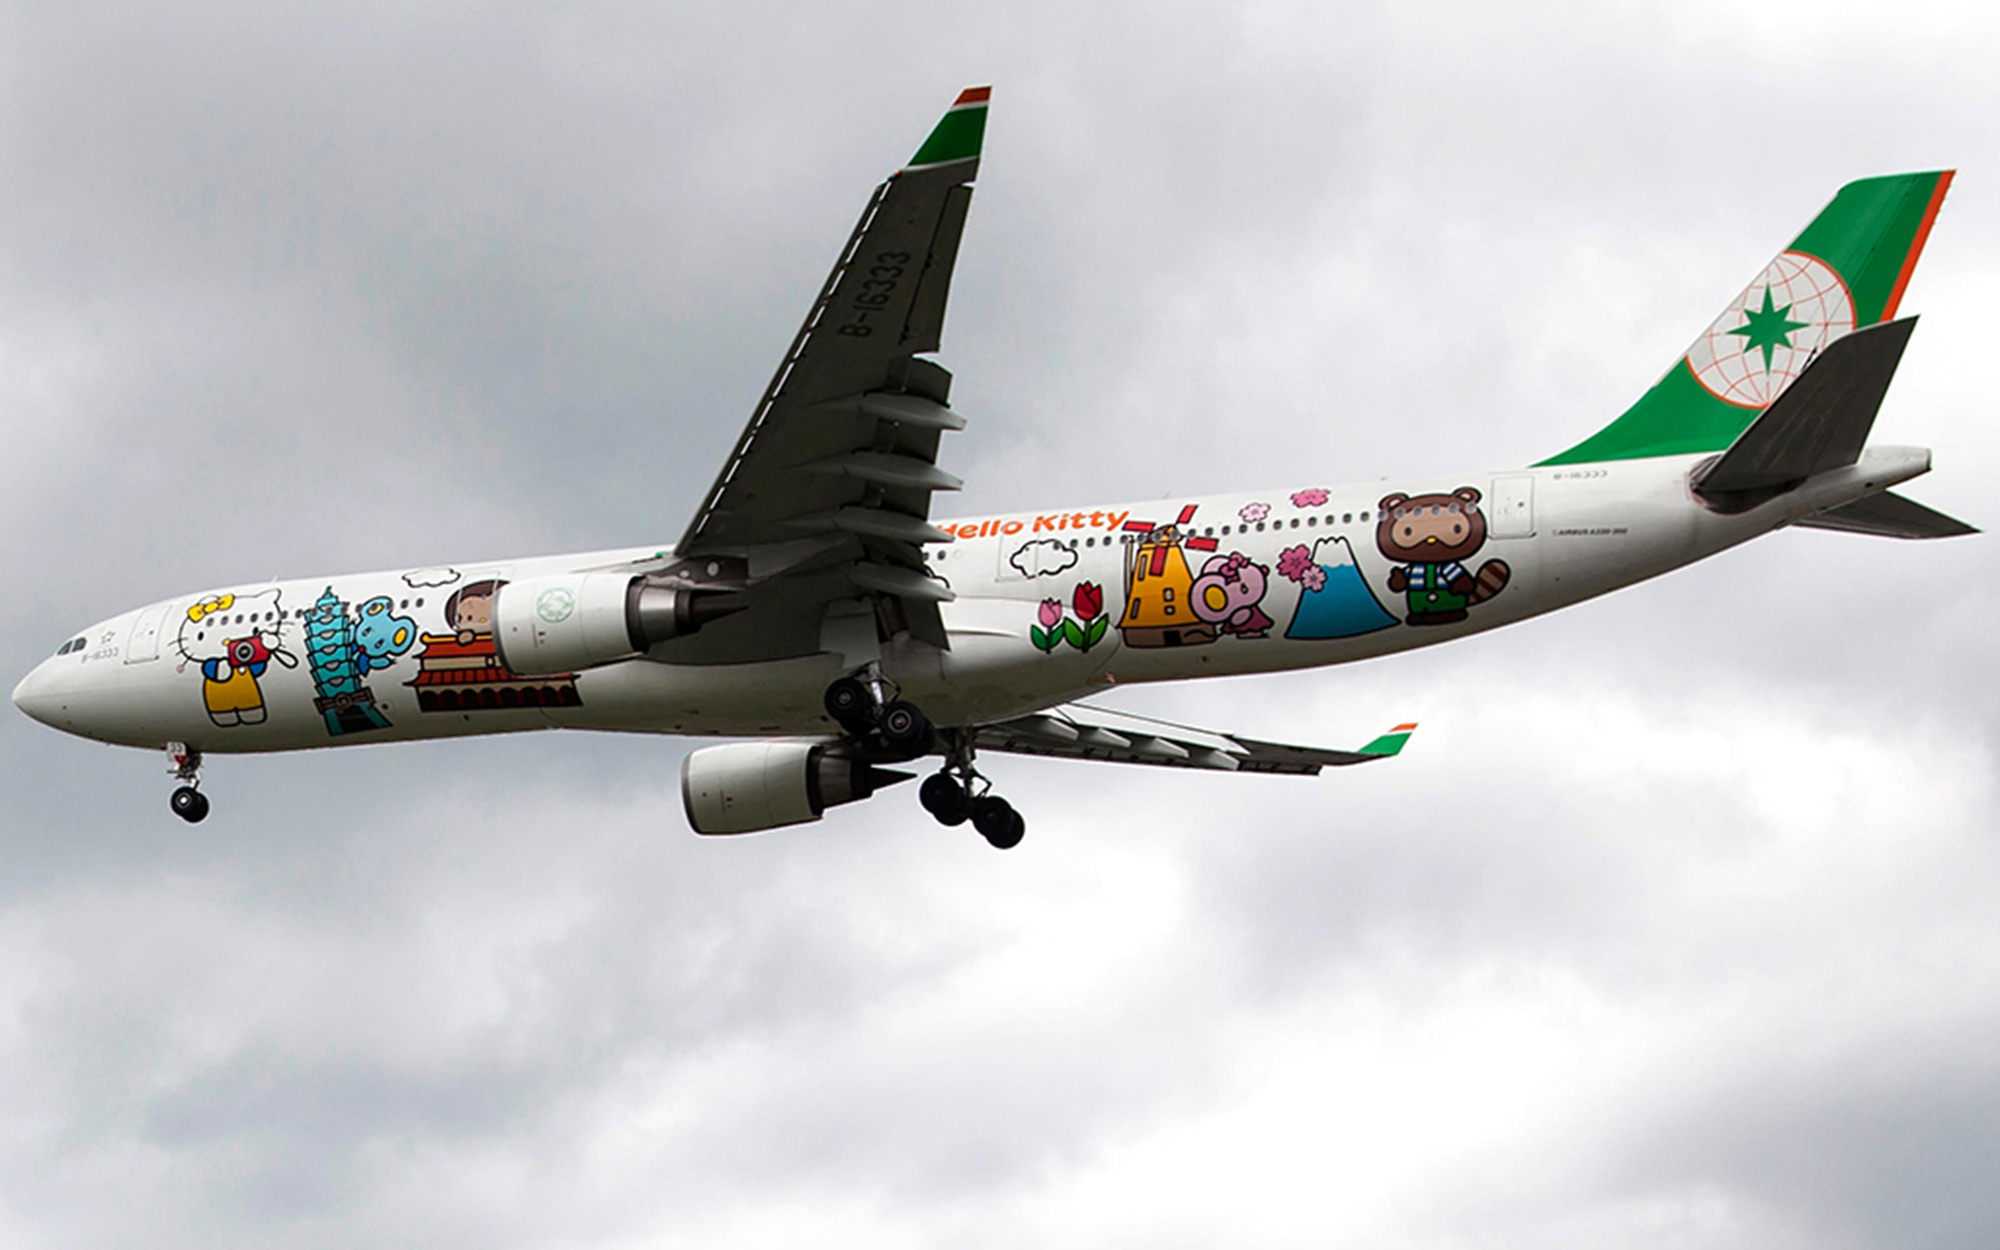 E4TKX2 A Hello Kitty-themed commercial airplane Airbus A333-300 operated by a Taiwanese airlines EVA Air is landing at Songshan airport on Jun 24, 2014 in Taipei, Taiwan. (CTK Photo/Karel Picha)